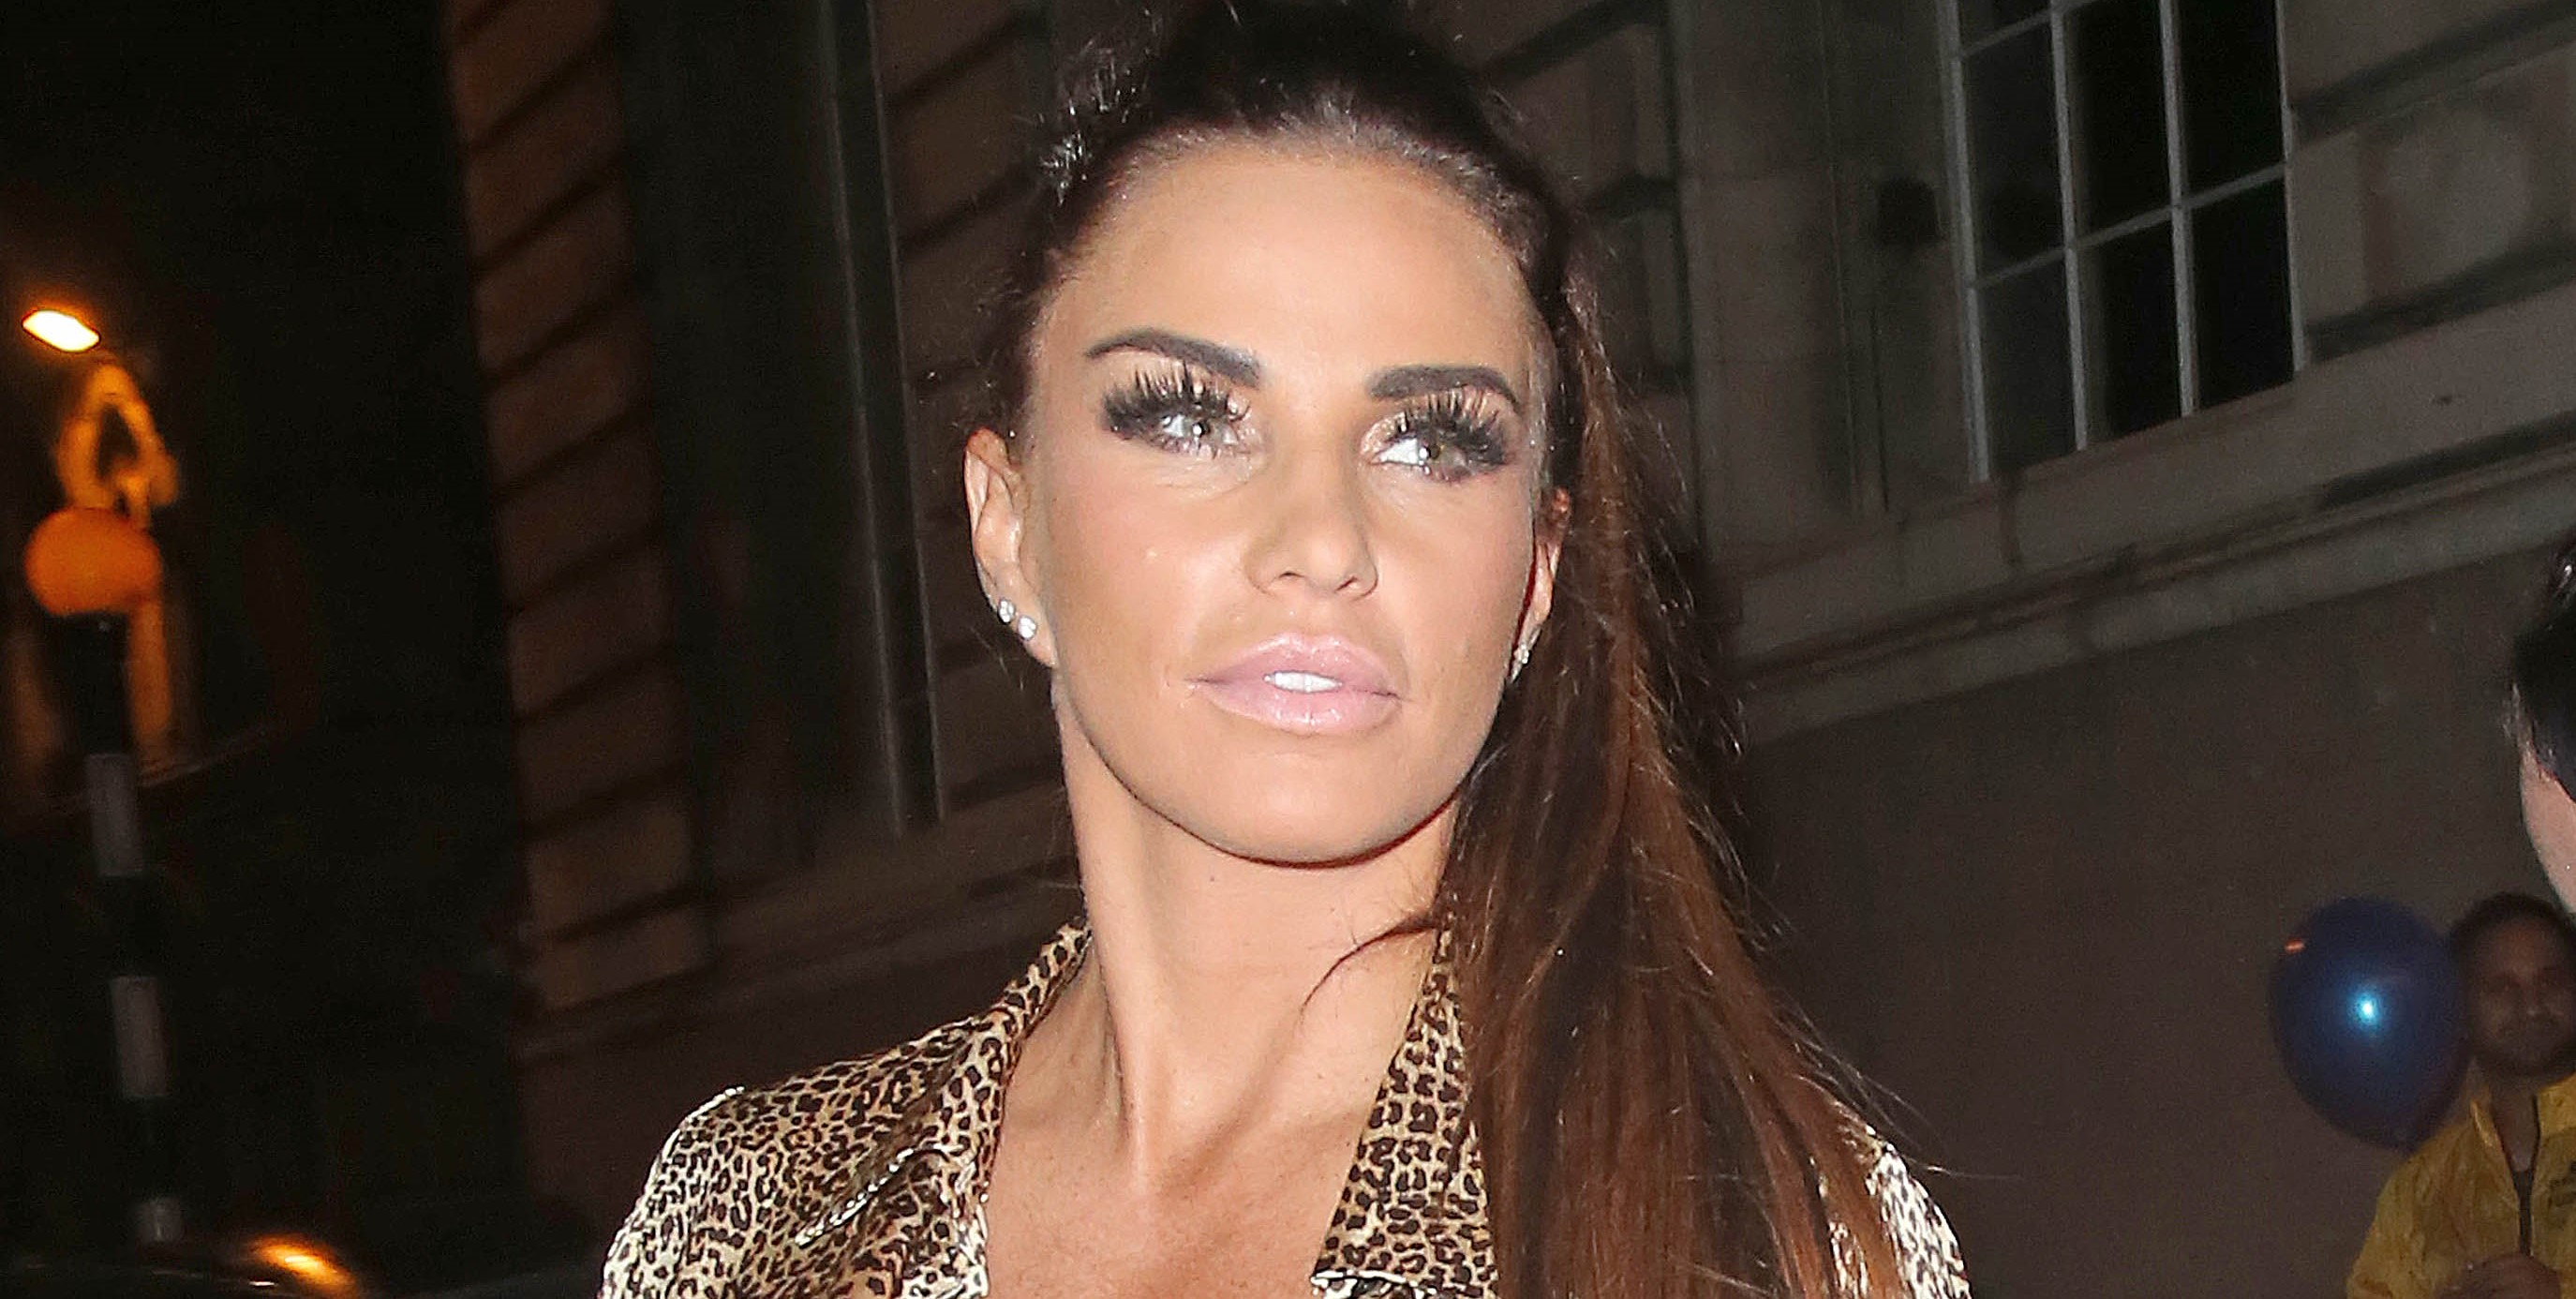 Katie Price 'to give up booze, sex and junk food for New Year's resolution'